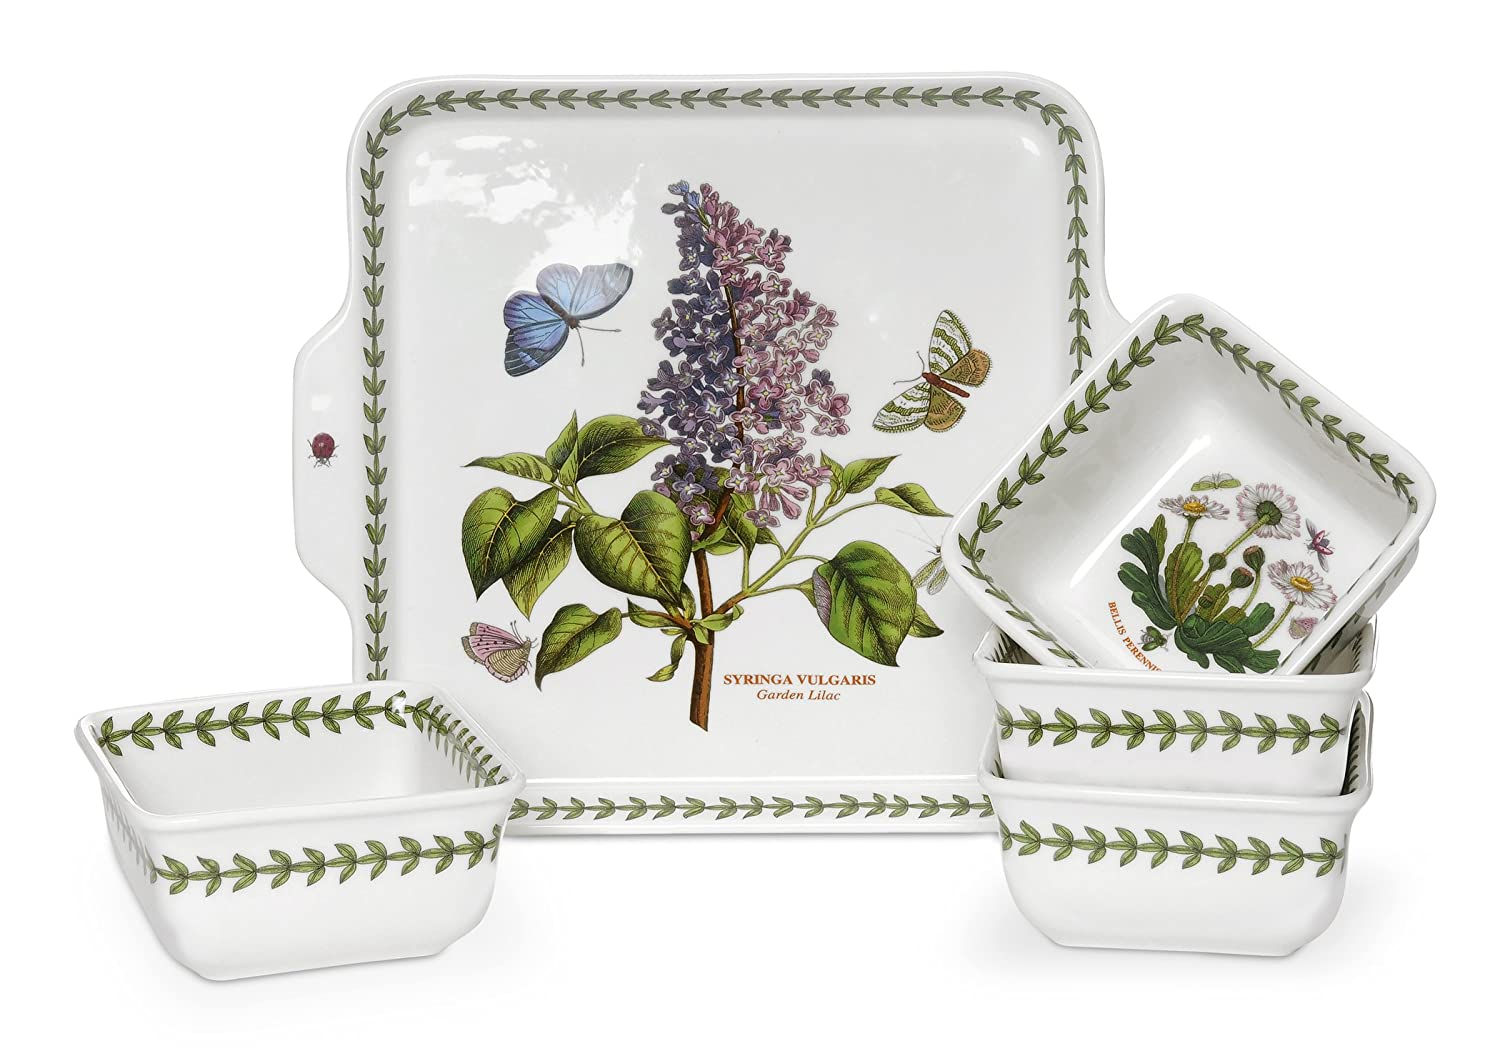 Portmeirion Botanic Garden 5-Piece Accent Bowl Set